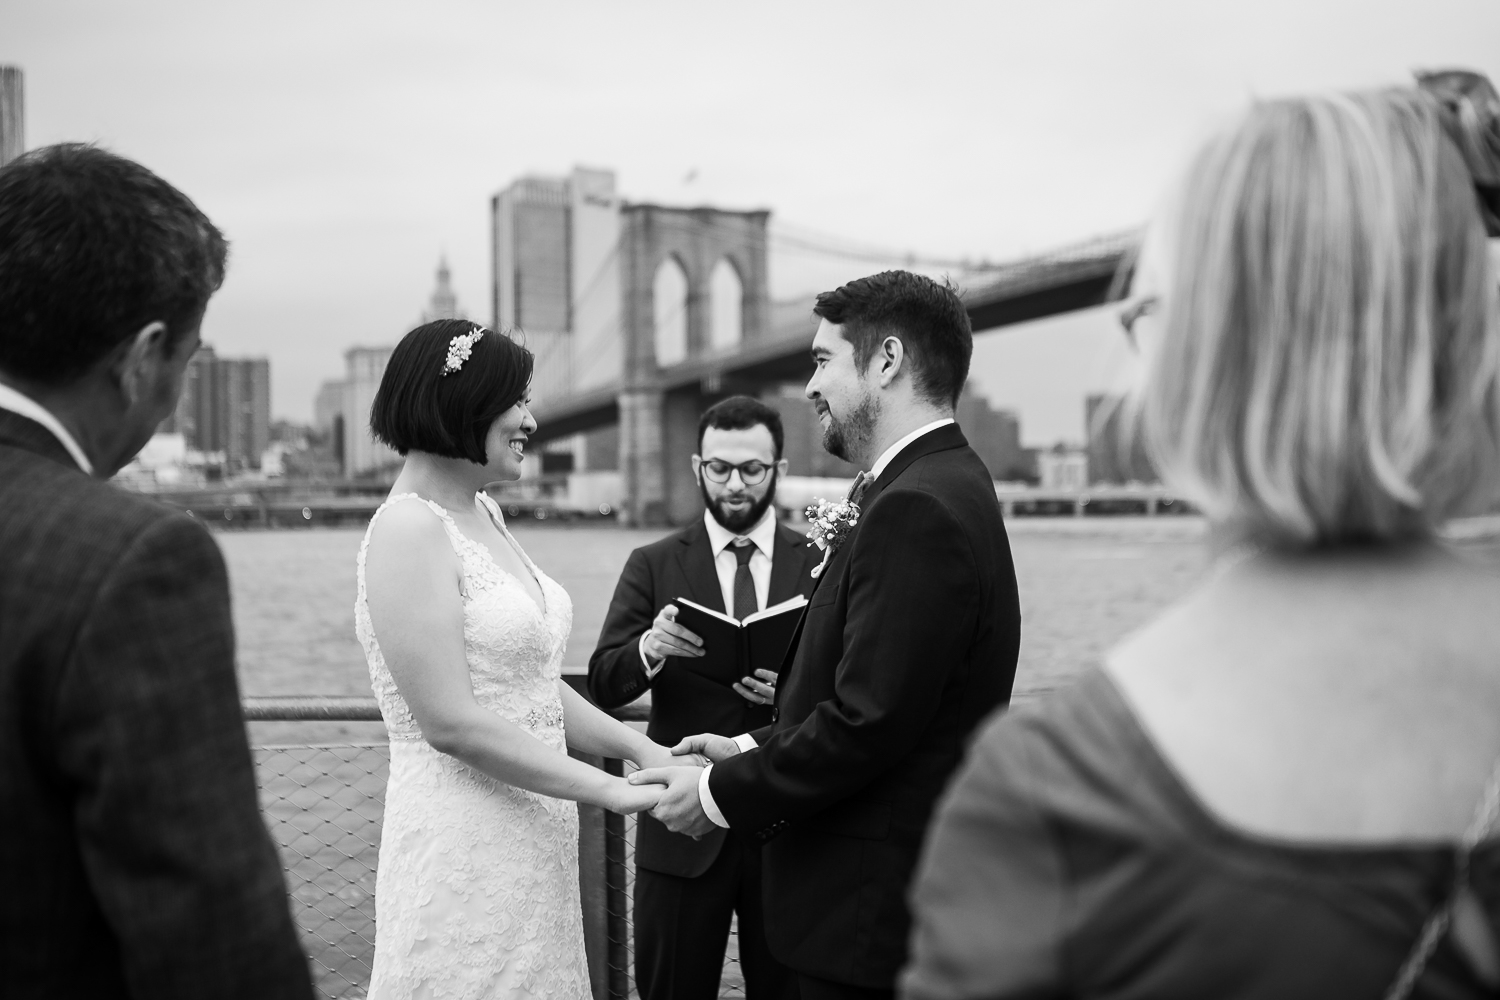 Married by Marley officiating a wedding in DUMBO